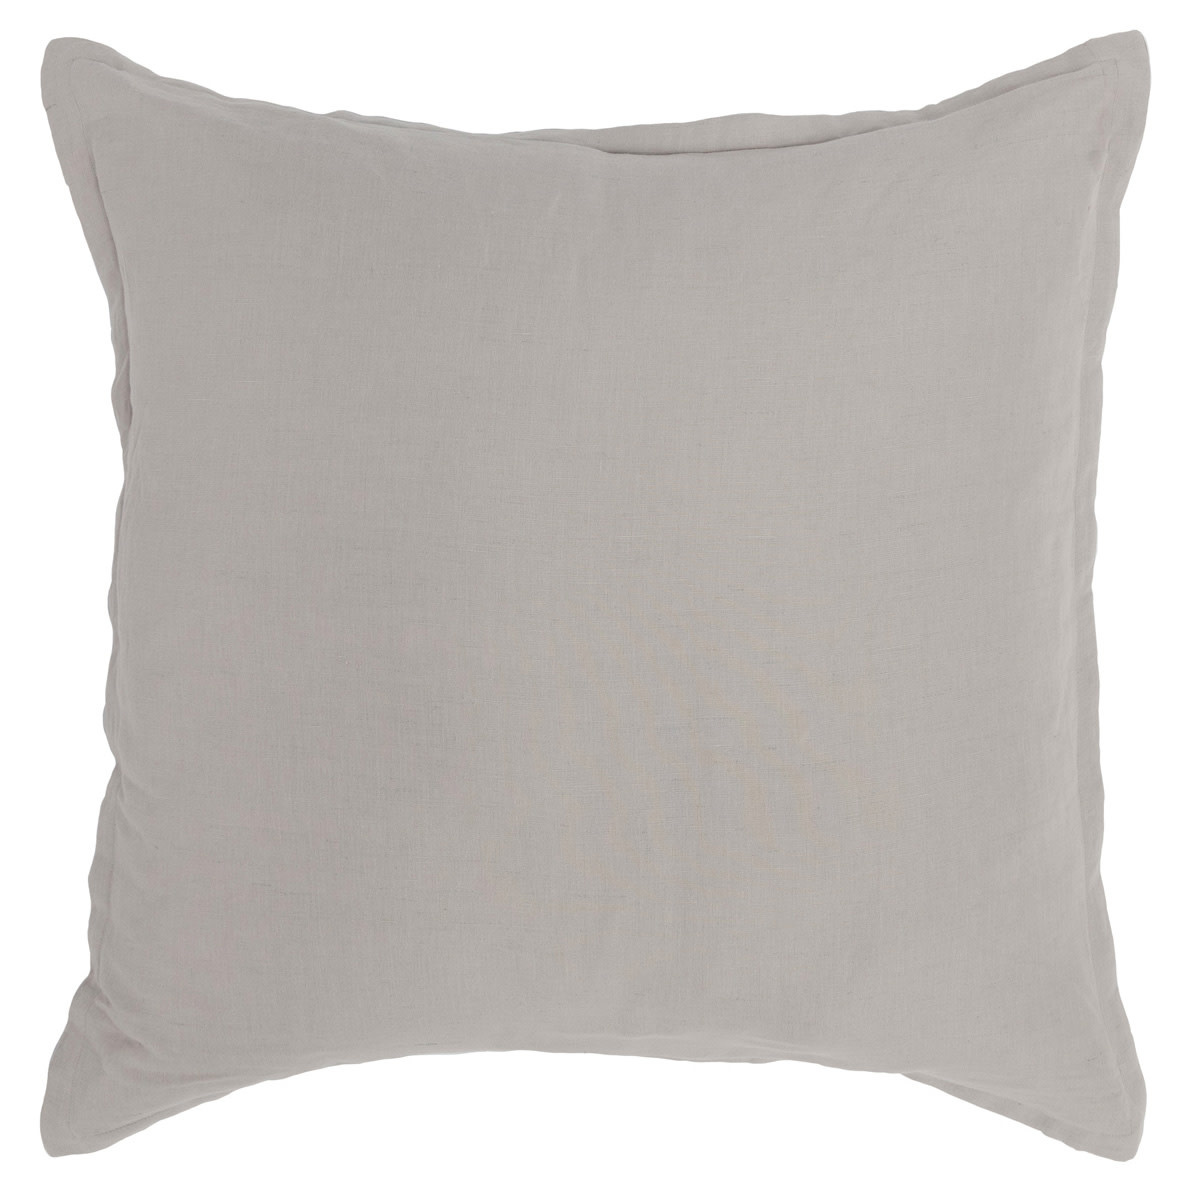 ARCADIA DOVE EURO PILLOW